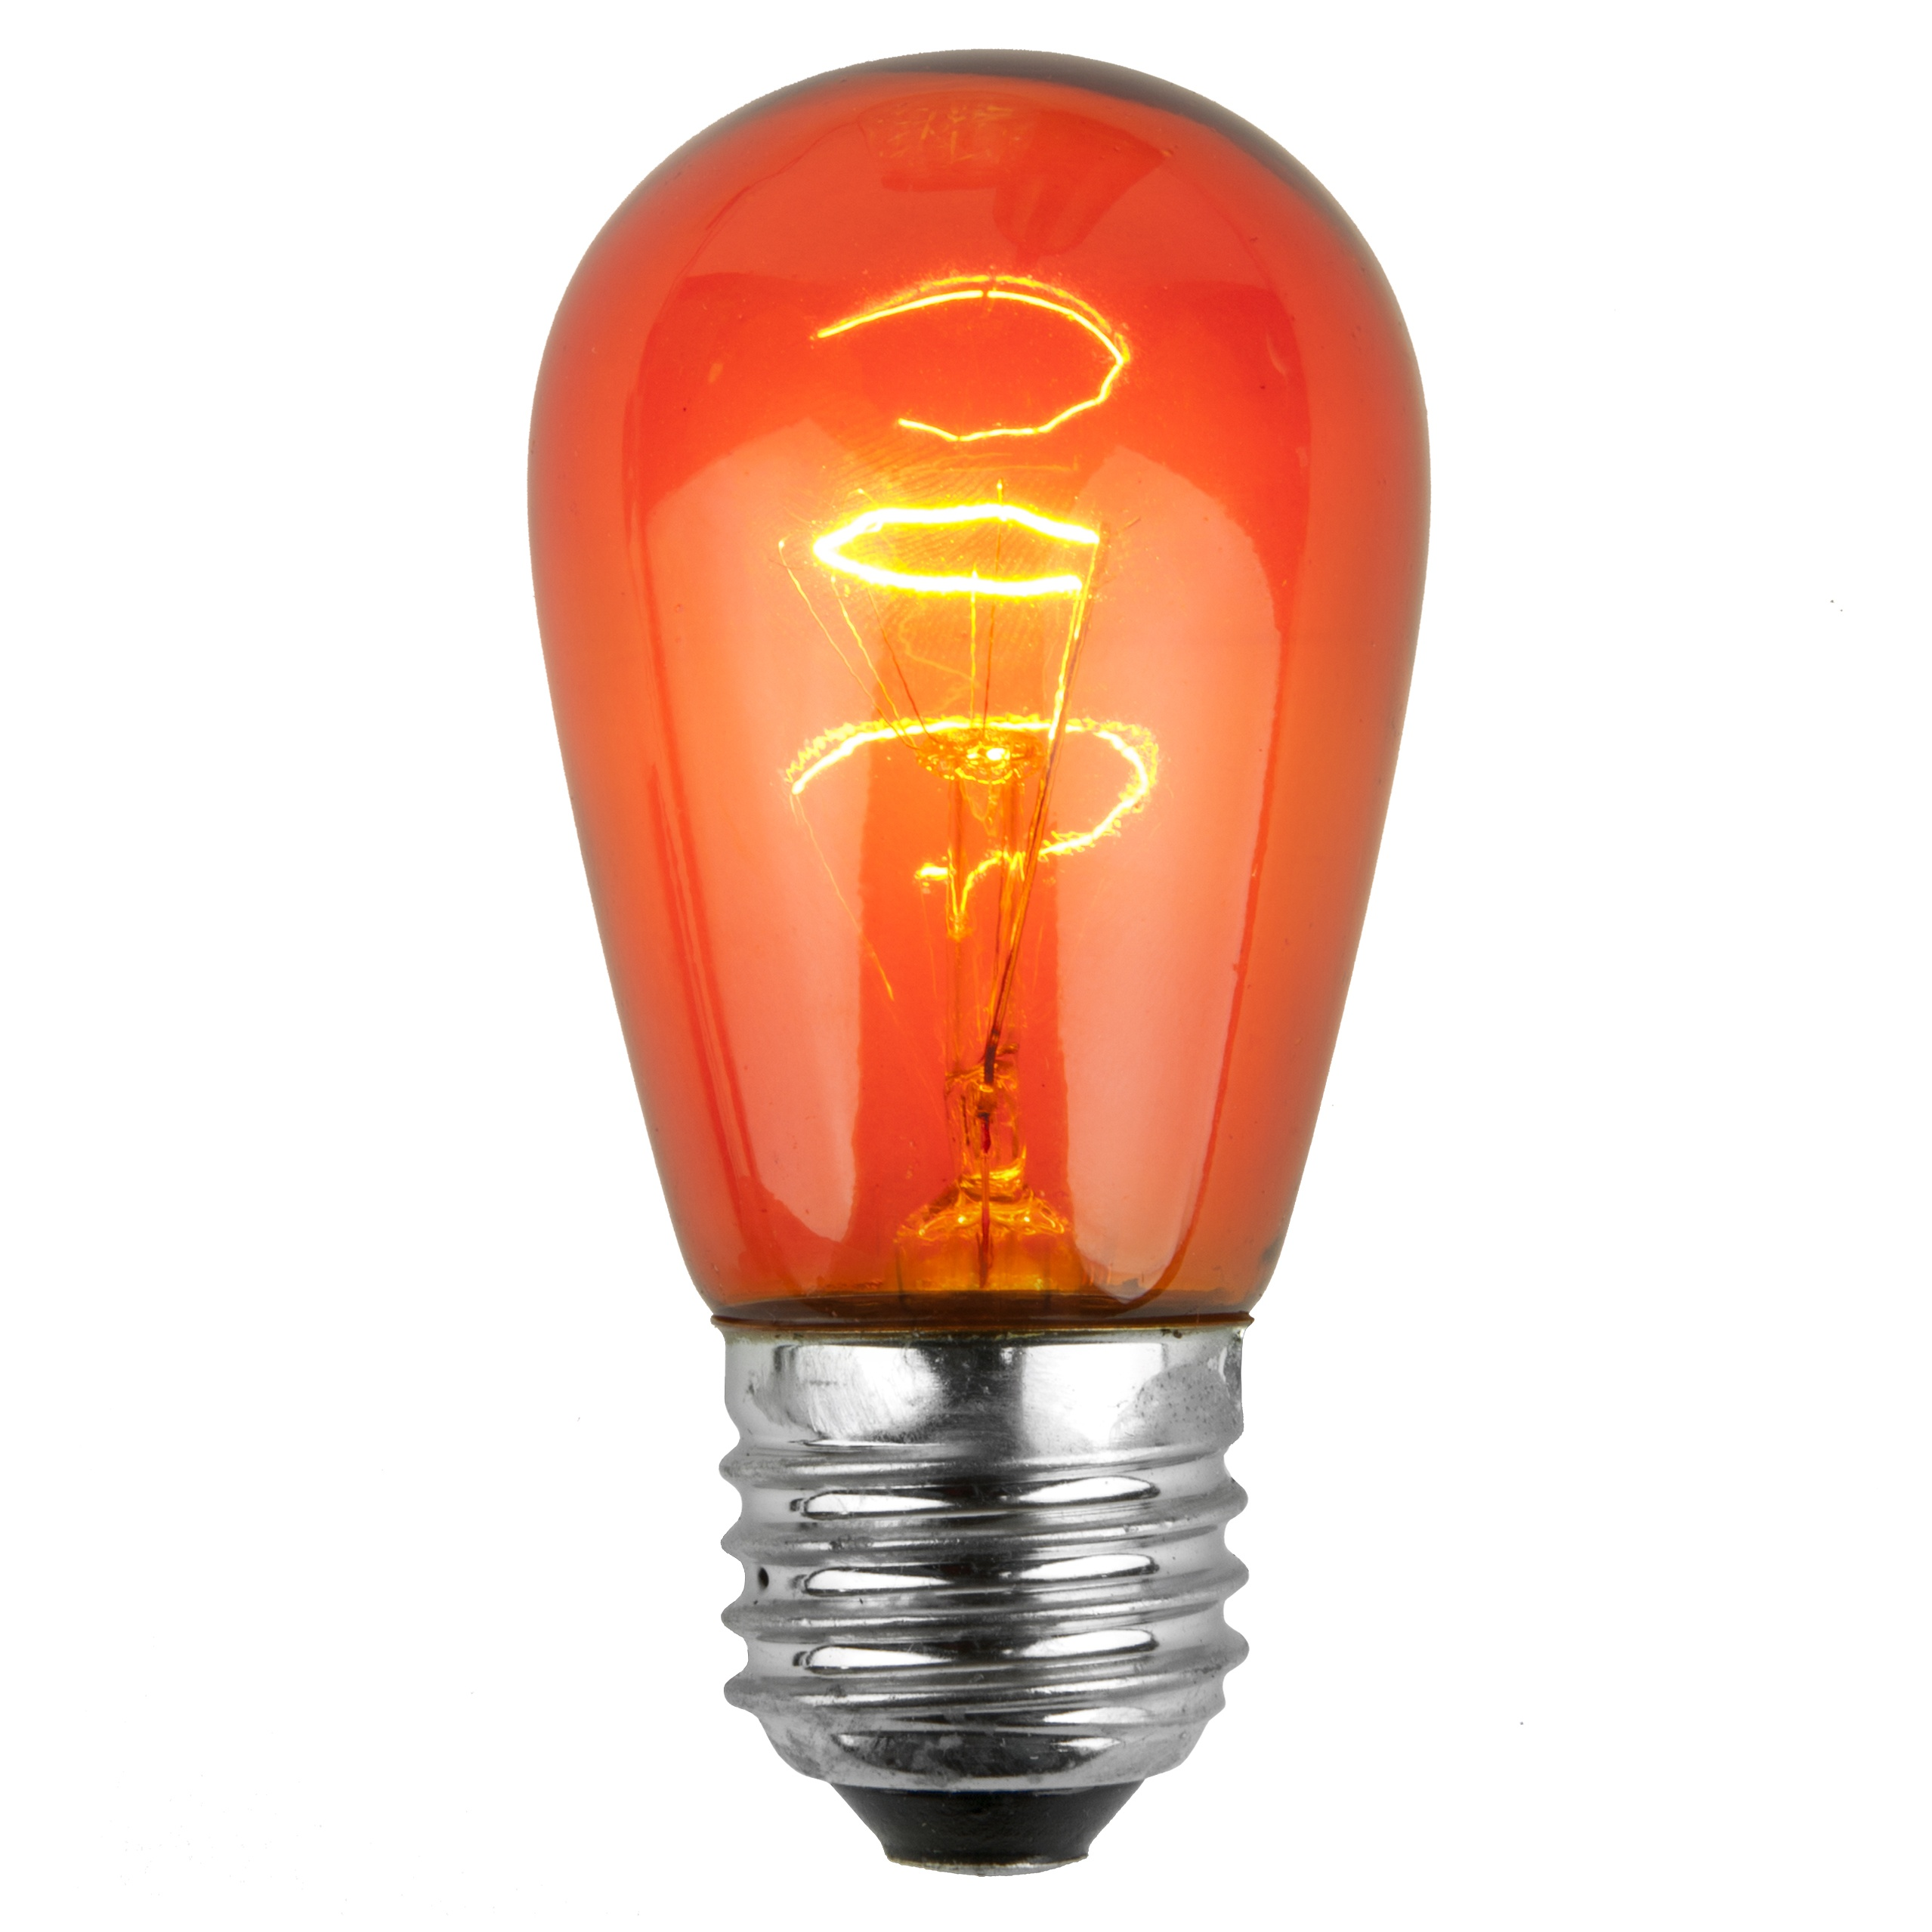 11S14 Transparent Amber Incandescent Sign Lamp